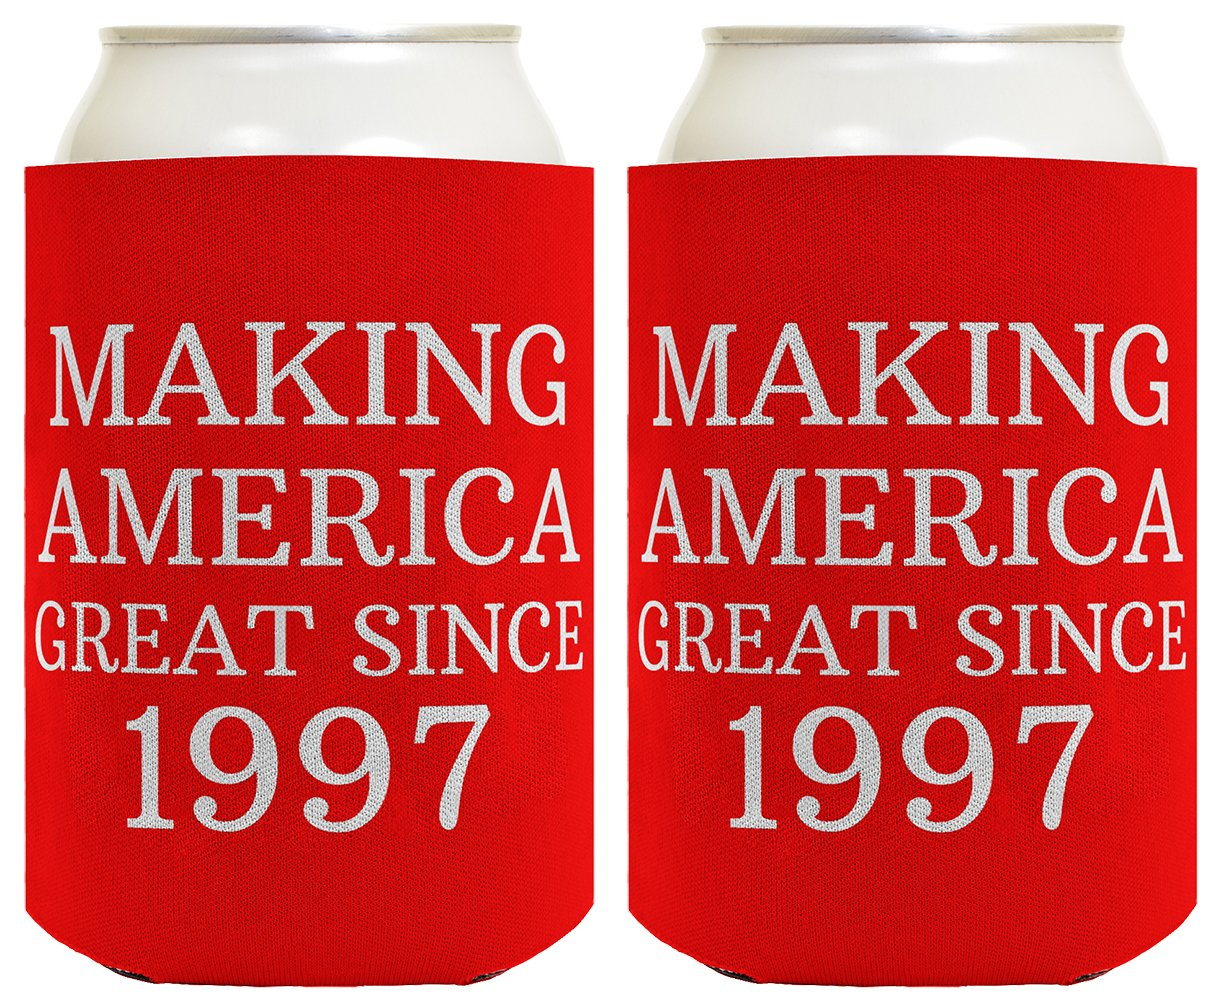 Republican Gifts for 21st Birthday Making America Great Since 1997 21st Birthday Gag Gifts for Republican Party 2 Pack Can Coolie Drink Coolers Coolies Red by Birthday Gifts For All